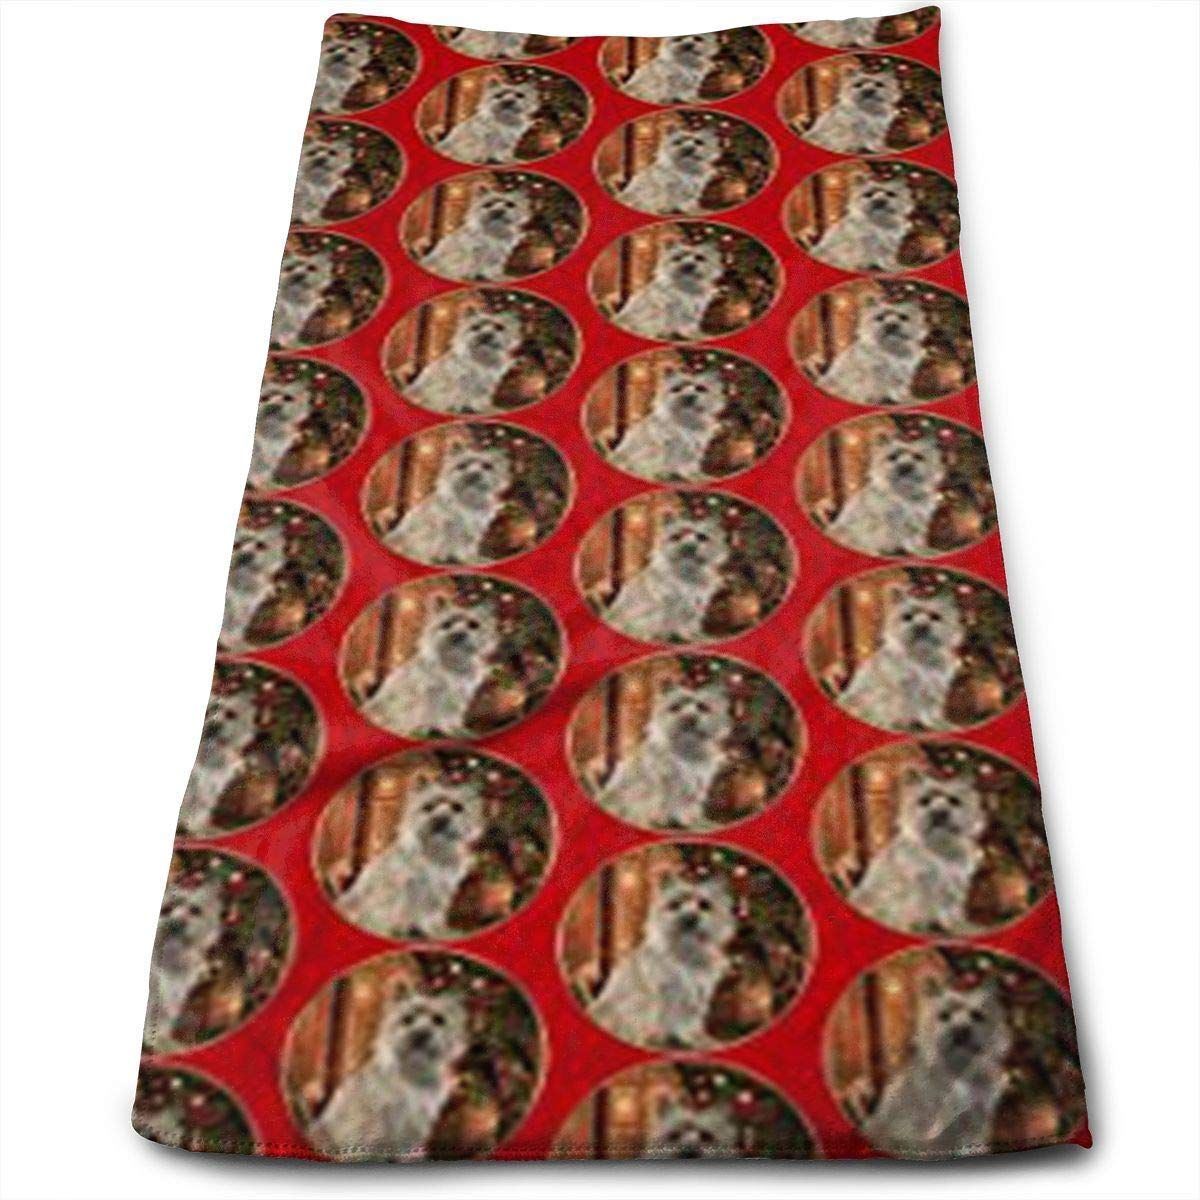 Sangeigt Handtuch r\n Baking Cairn Terrier Christmas Dish Towels,Oversized Kitchen Towels for Drying,Cleaning,Cooking